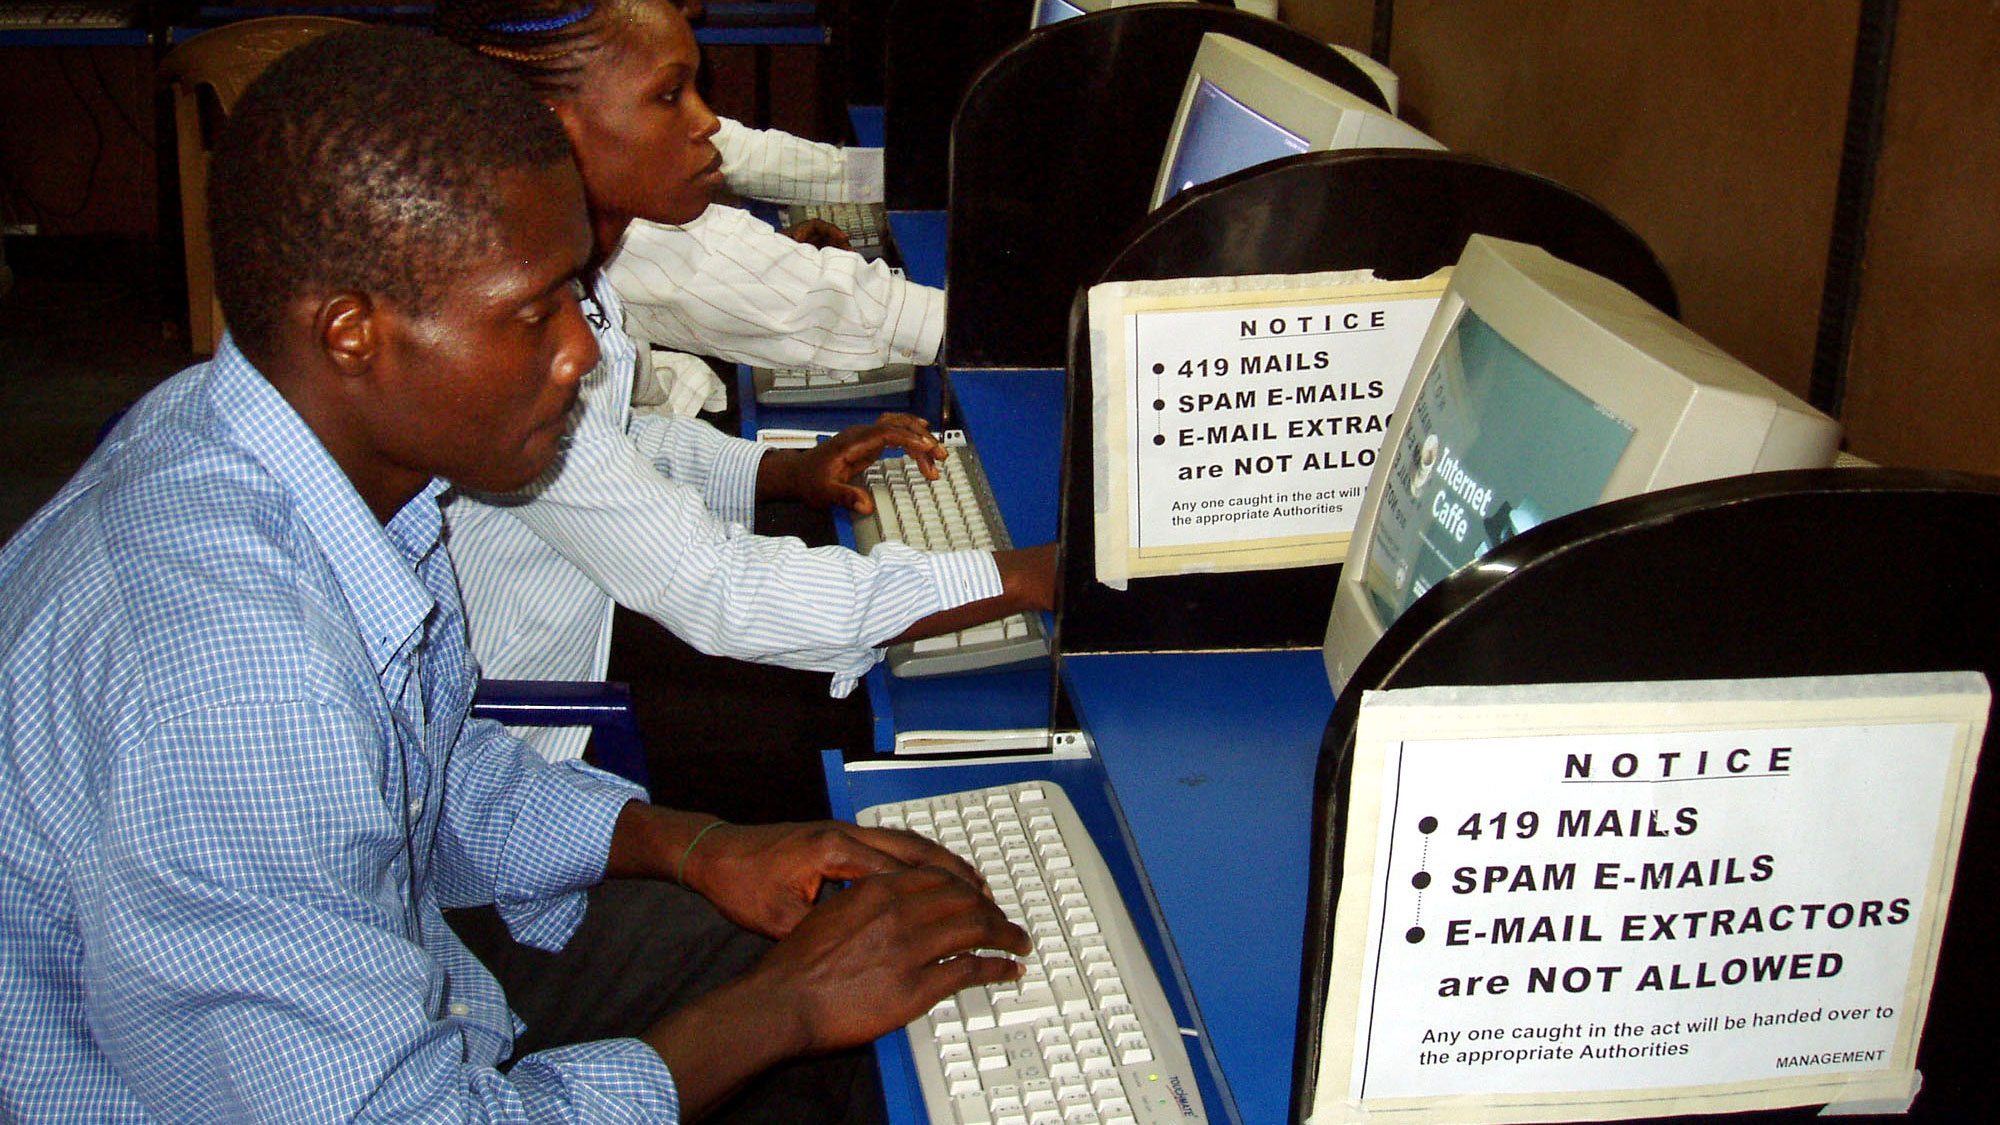 Nigerians surrounded by warning signs about sending fraudulent e-mail wait to use the Internet in an Internet cafe in Lagos, Nigeria Sunday, July 17, 2005. Nigerian police say they've scored results in a crackdown launched by President Olusegun Obasanjo's government in the past three years on such crime - which had grown to the point that it is associated with Nigeria all over the world - but new scammers are appearing and evolving new ruses to both trap victims and evade detection.